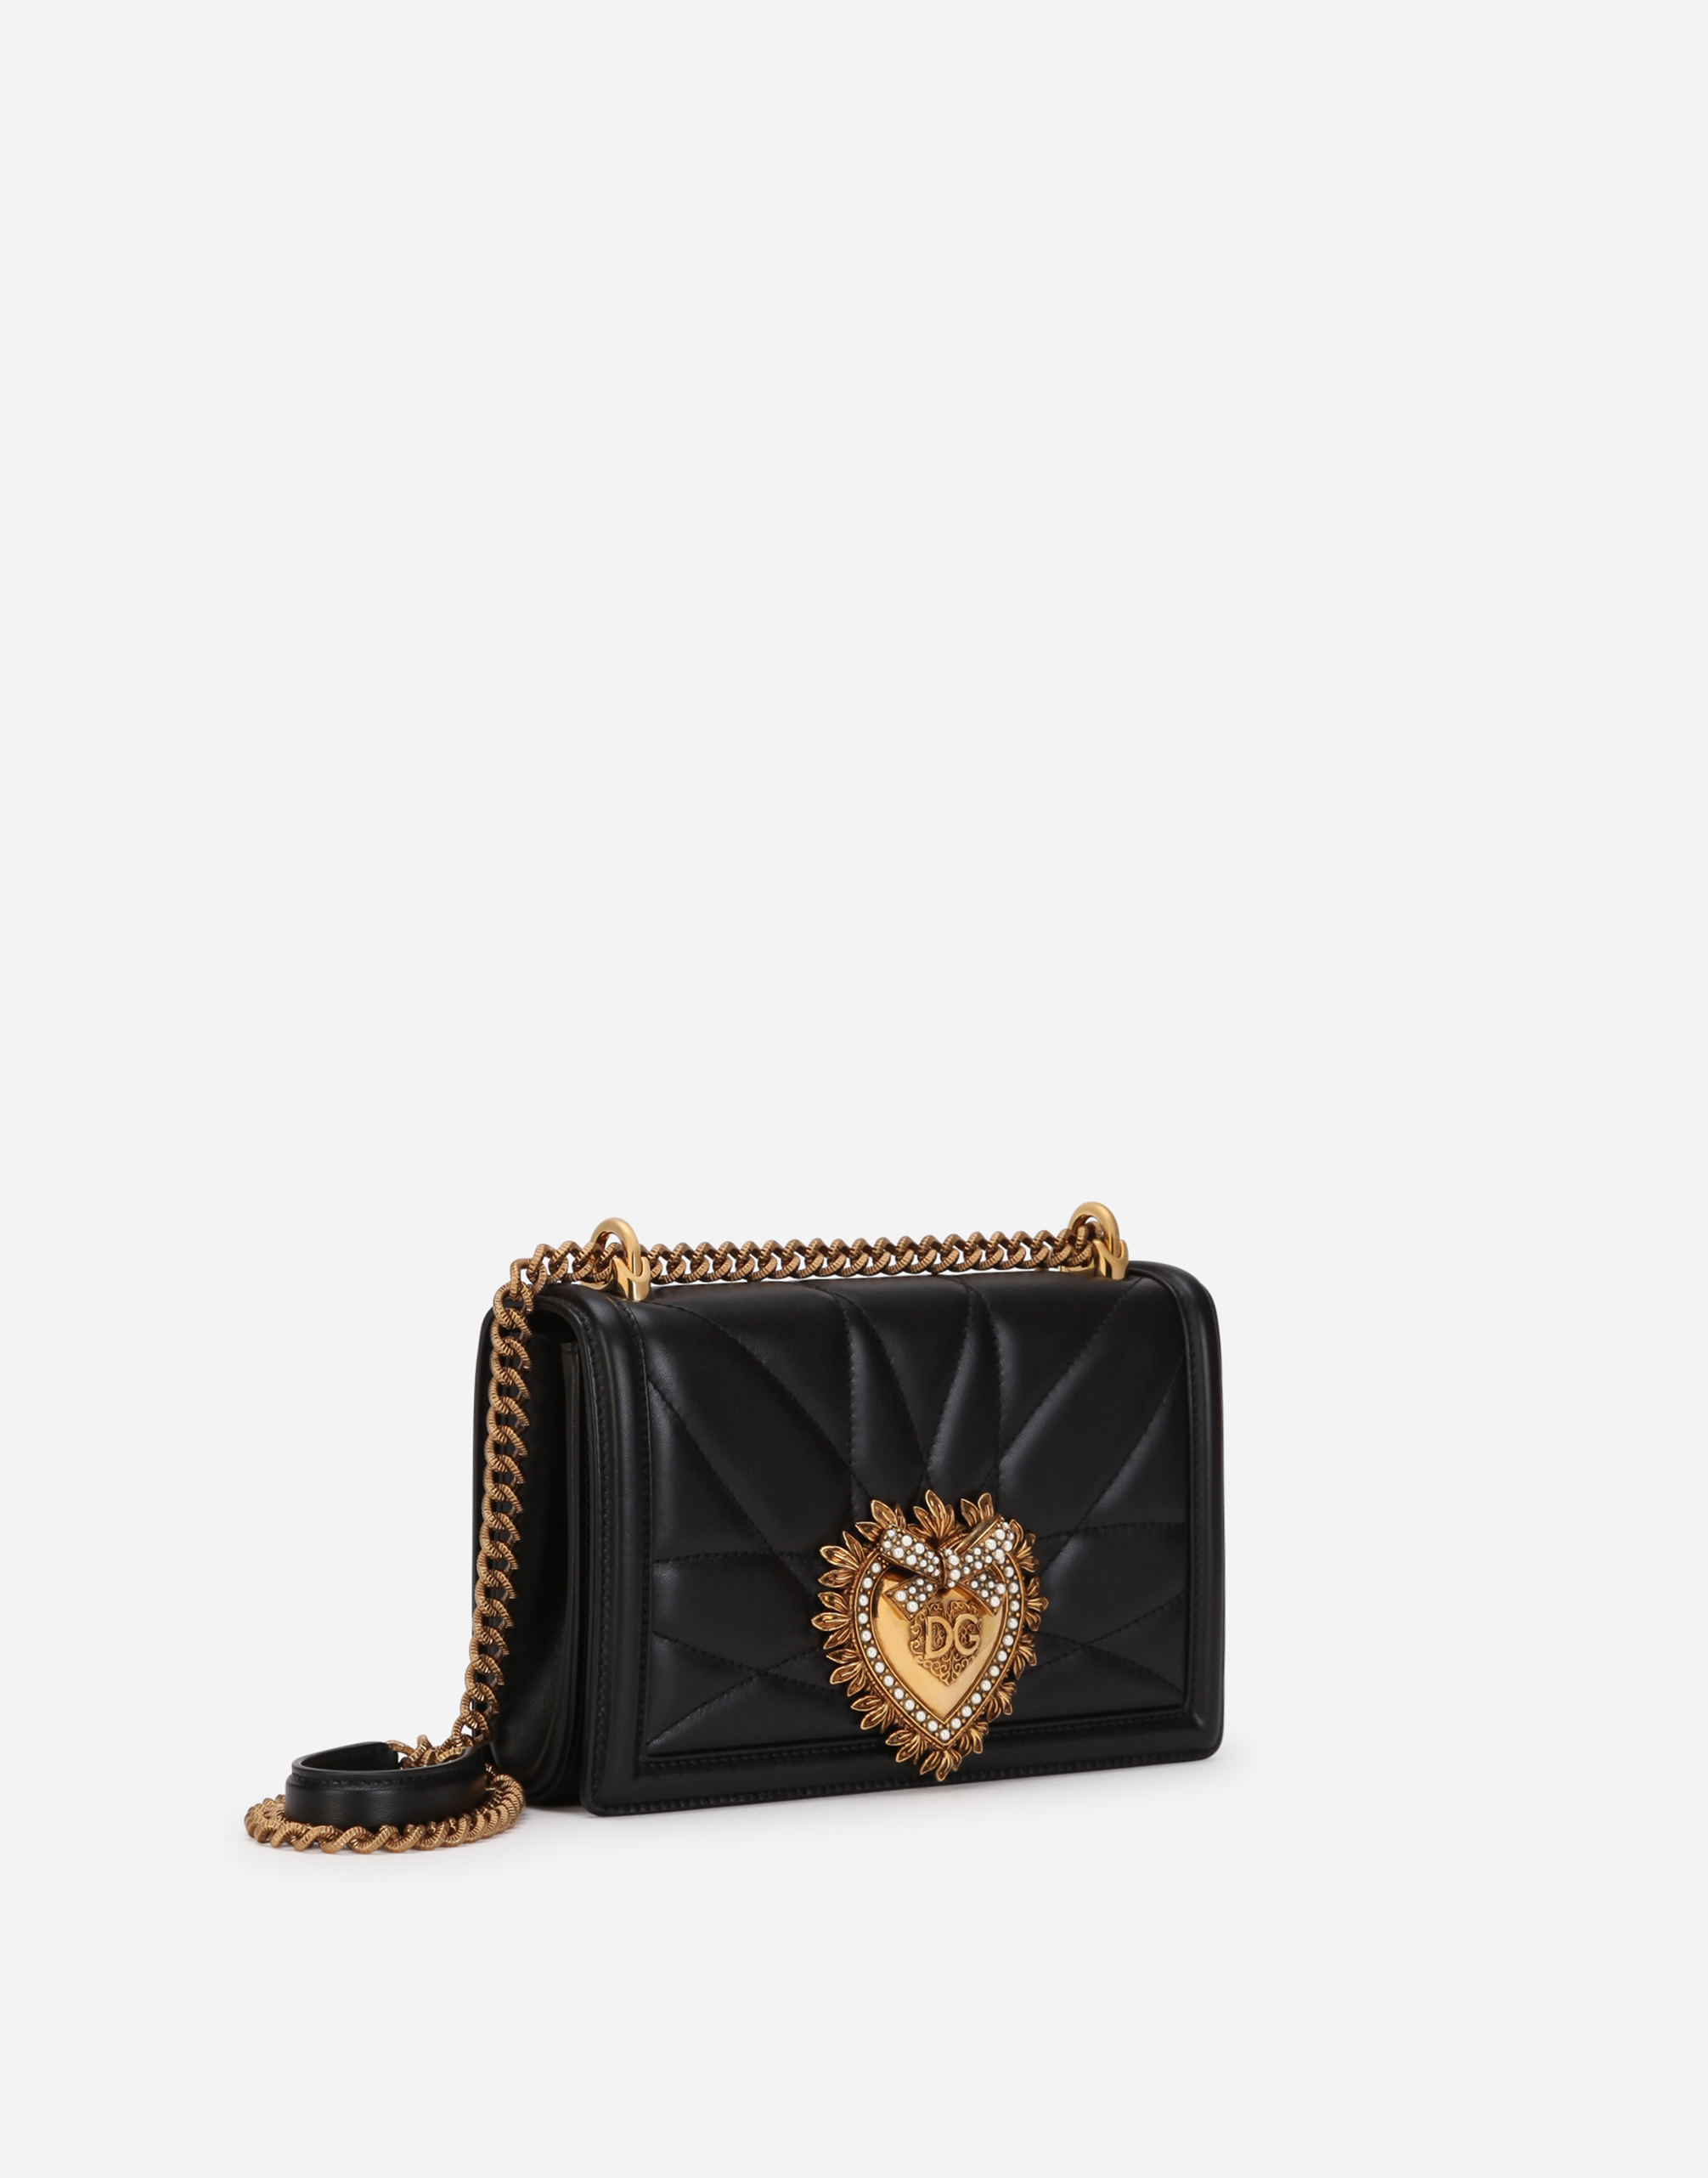 MEDIUM DEVOTION BAG IN QUILTED NAPPA LEATHER